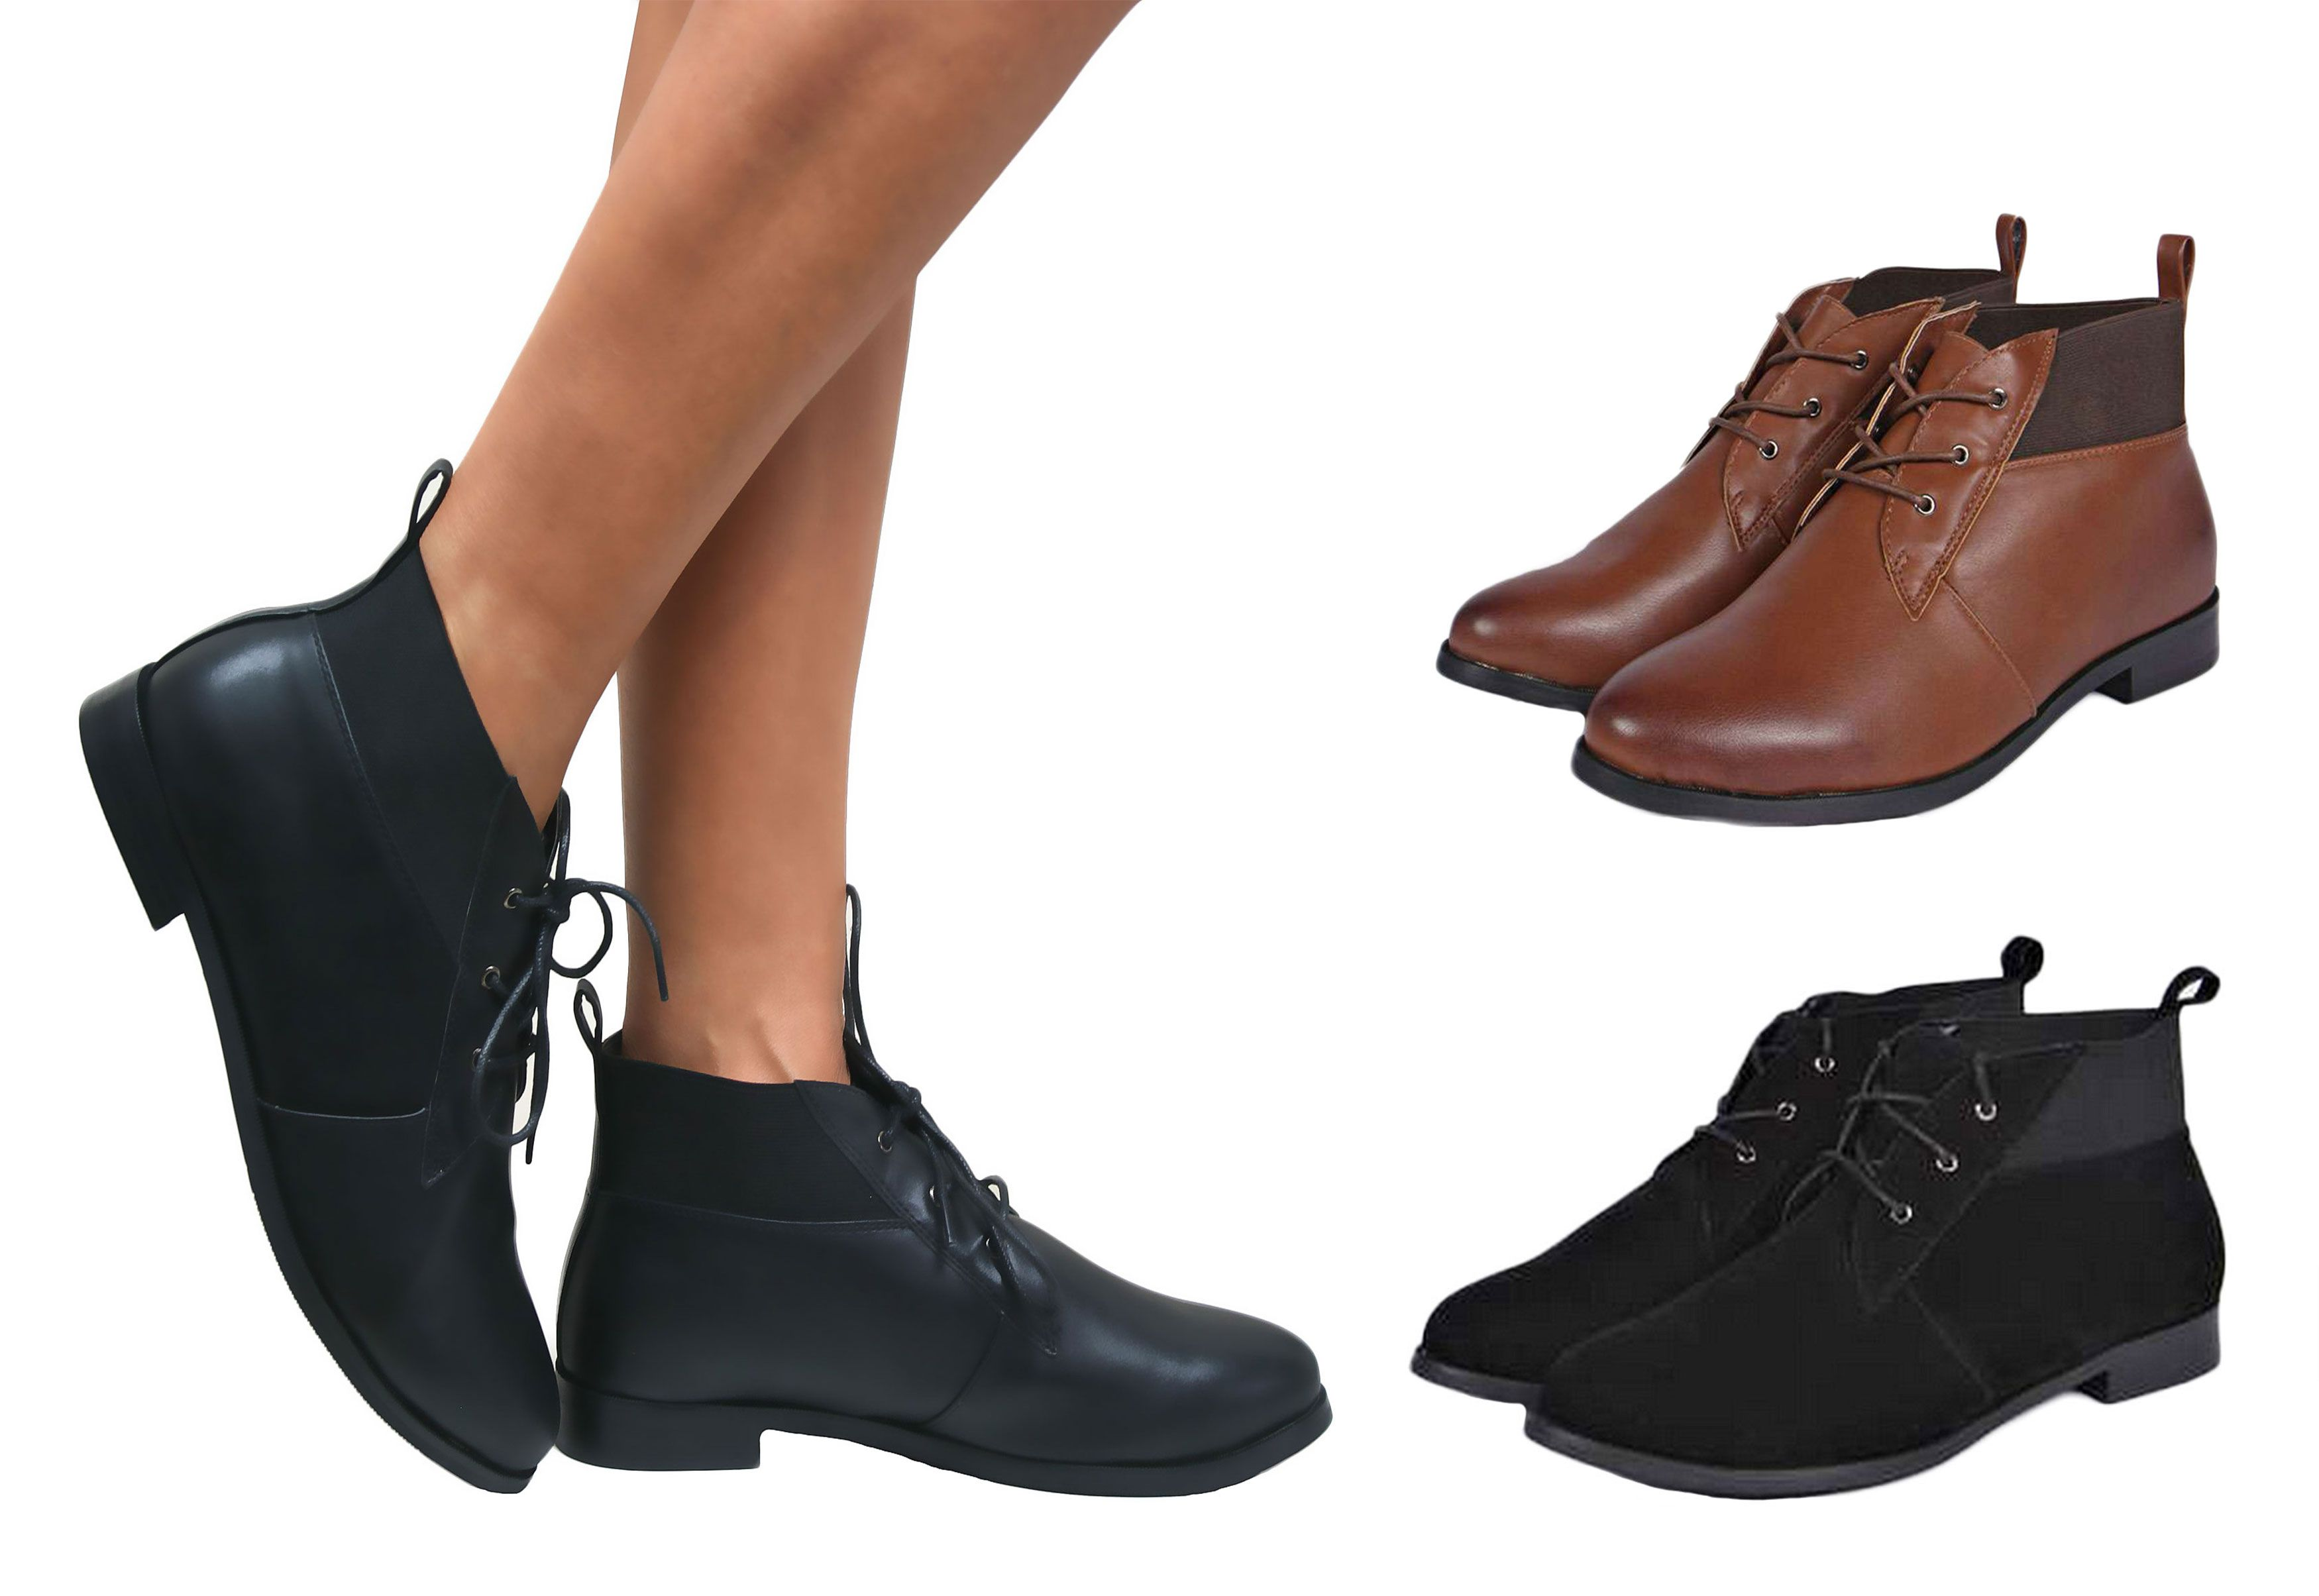 Short Black Boots For Women fW3p3n5X